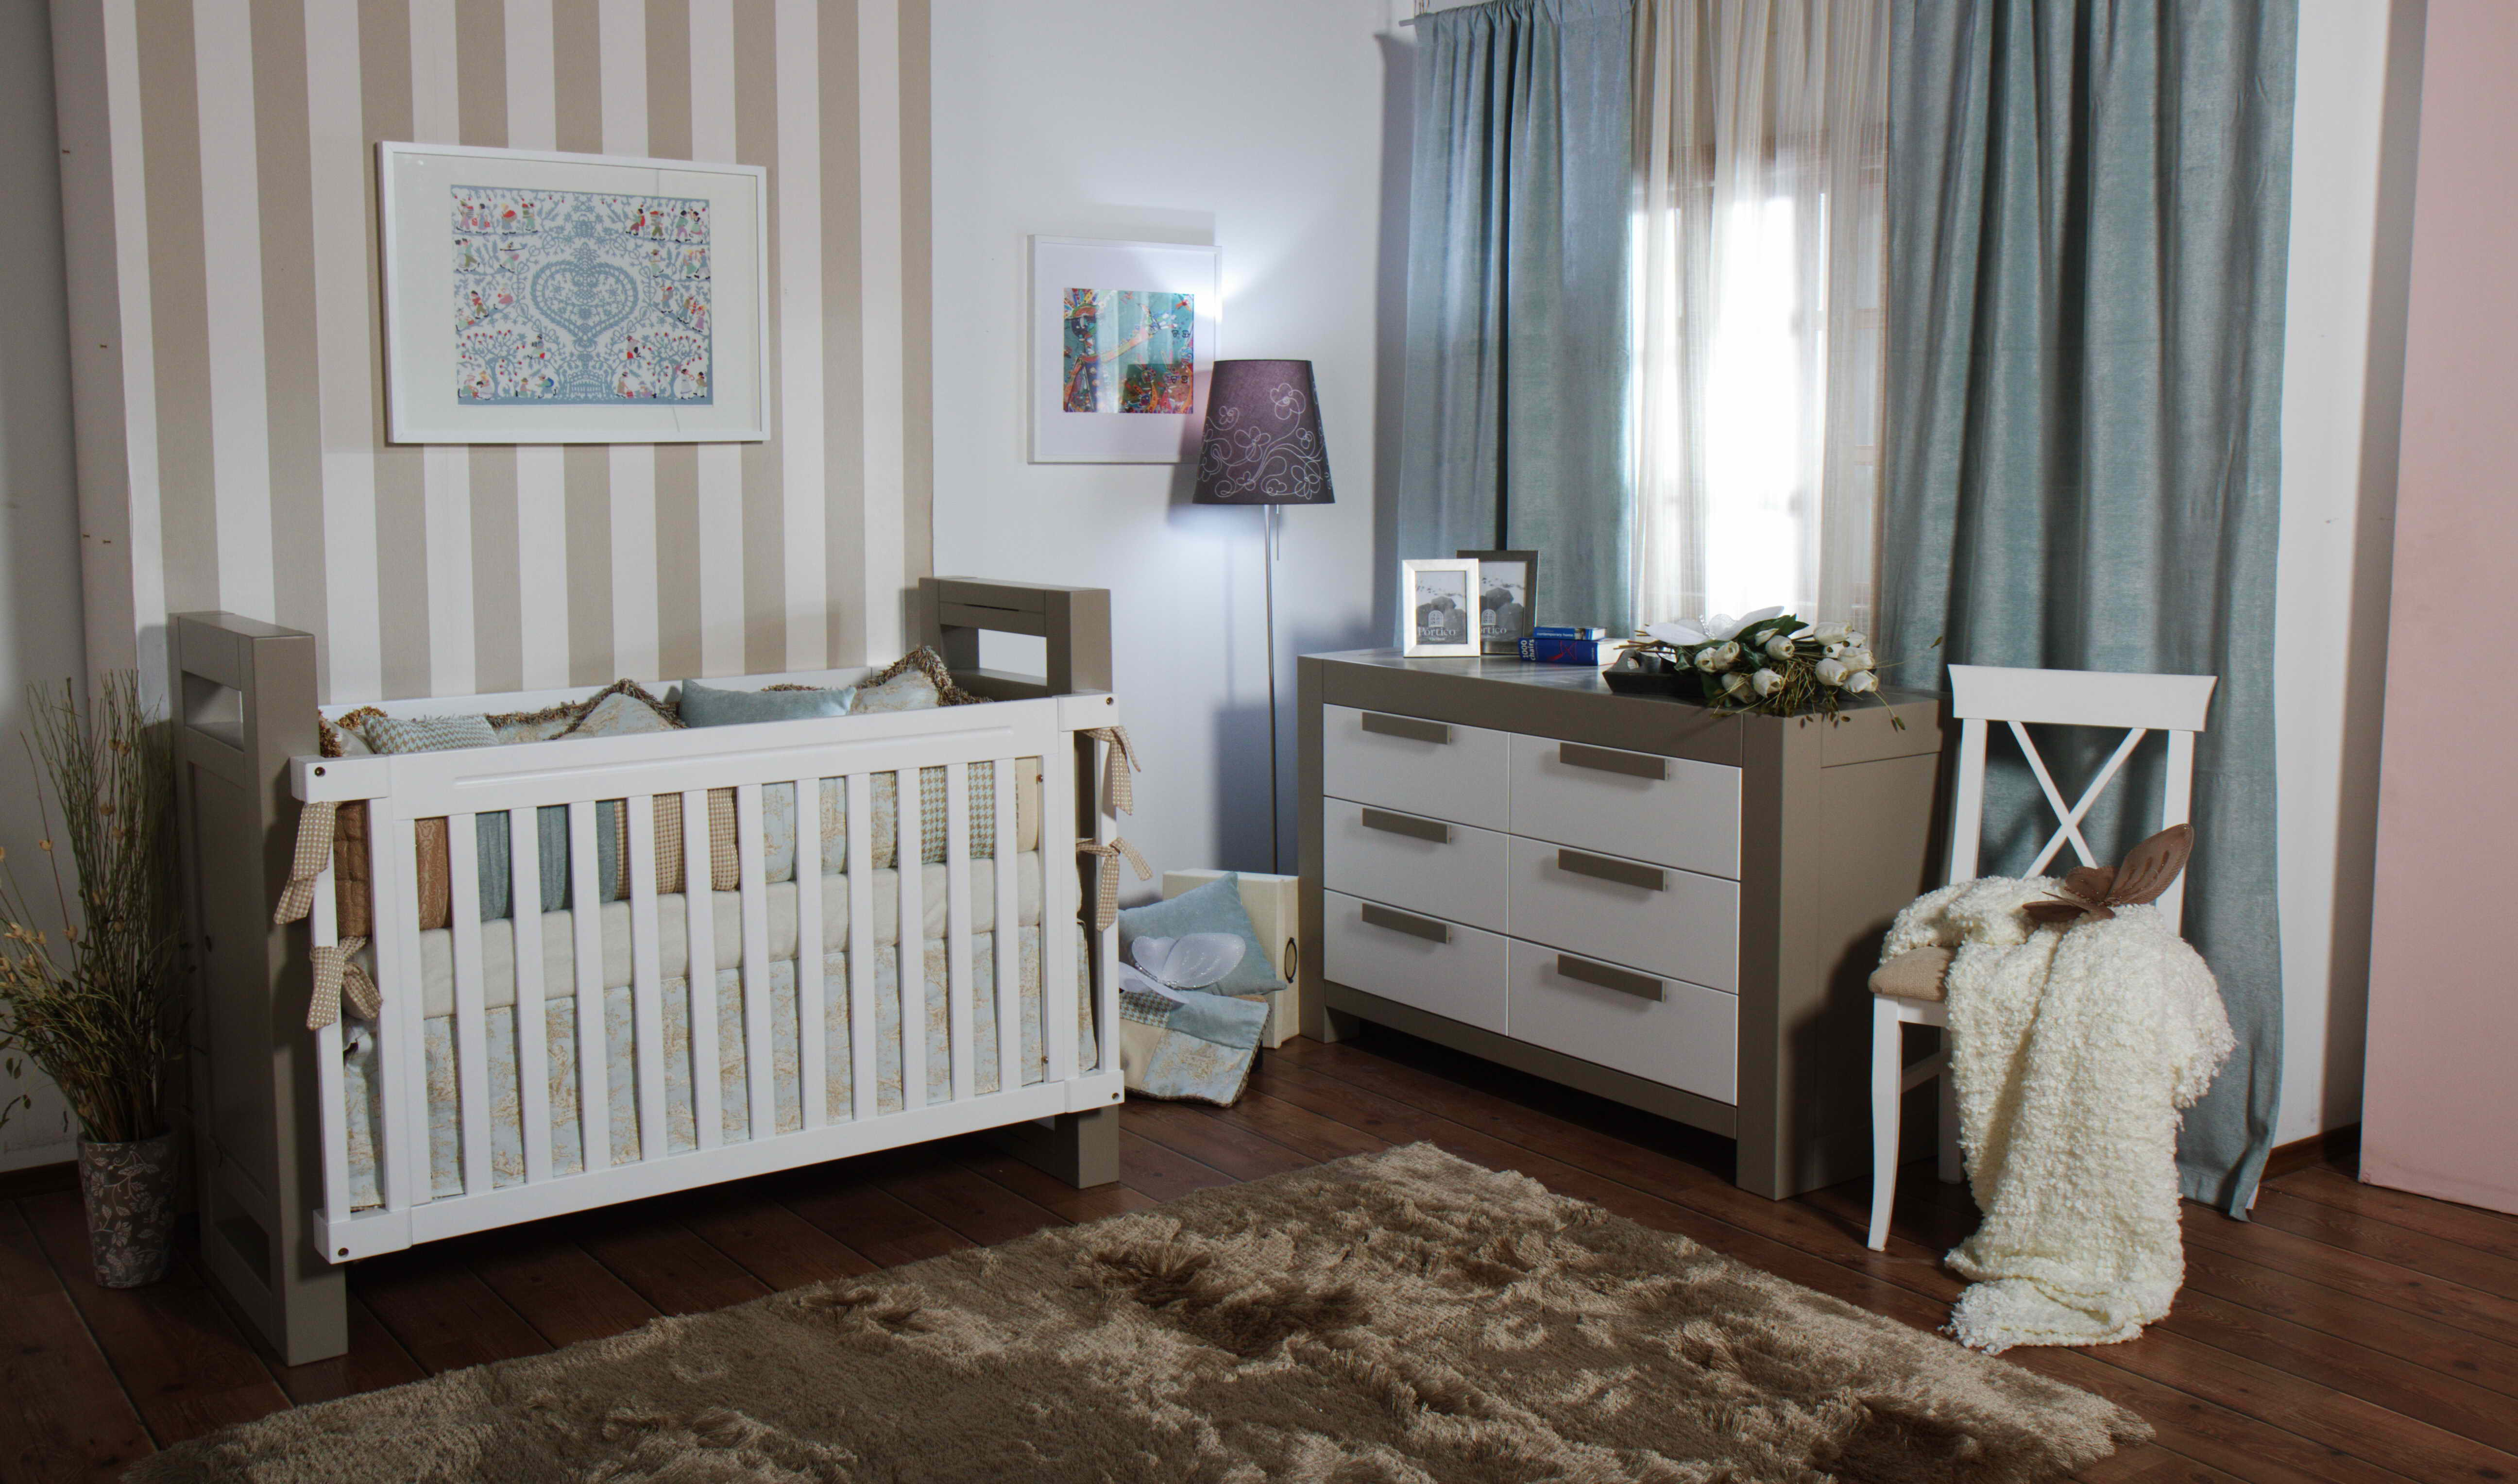 Grey Nursery Chair Furniture Buying Tips From Real Moms Part 1 Of 2